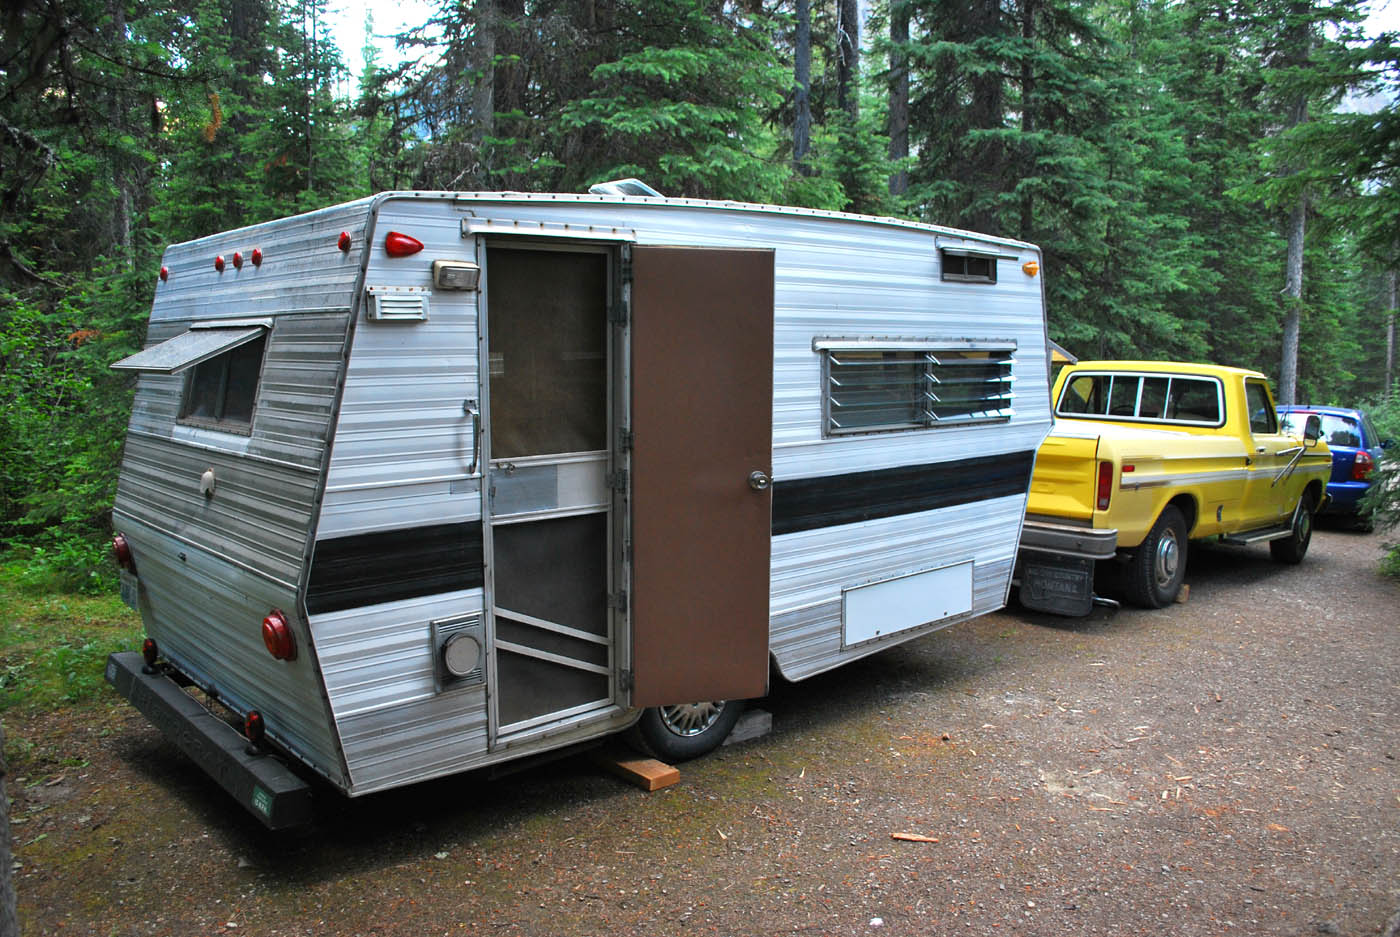 1969 Aristocrat Lo Liner Vintage Camper Trailers For Sale ...